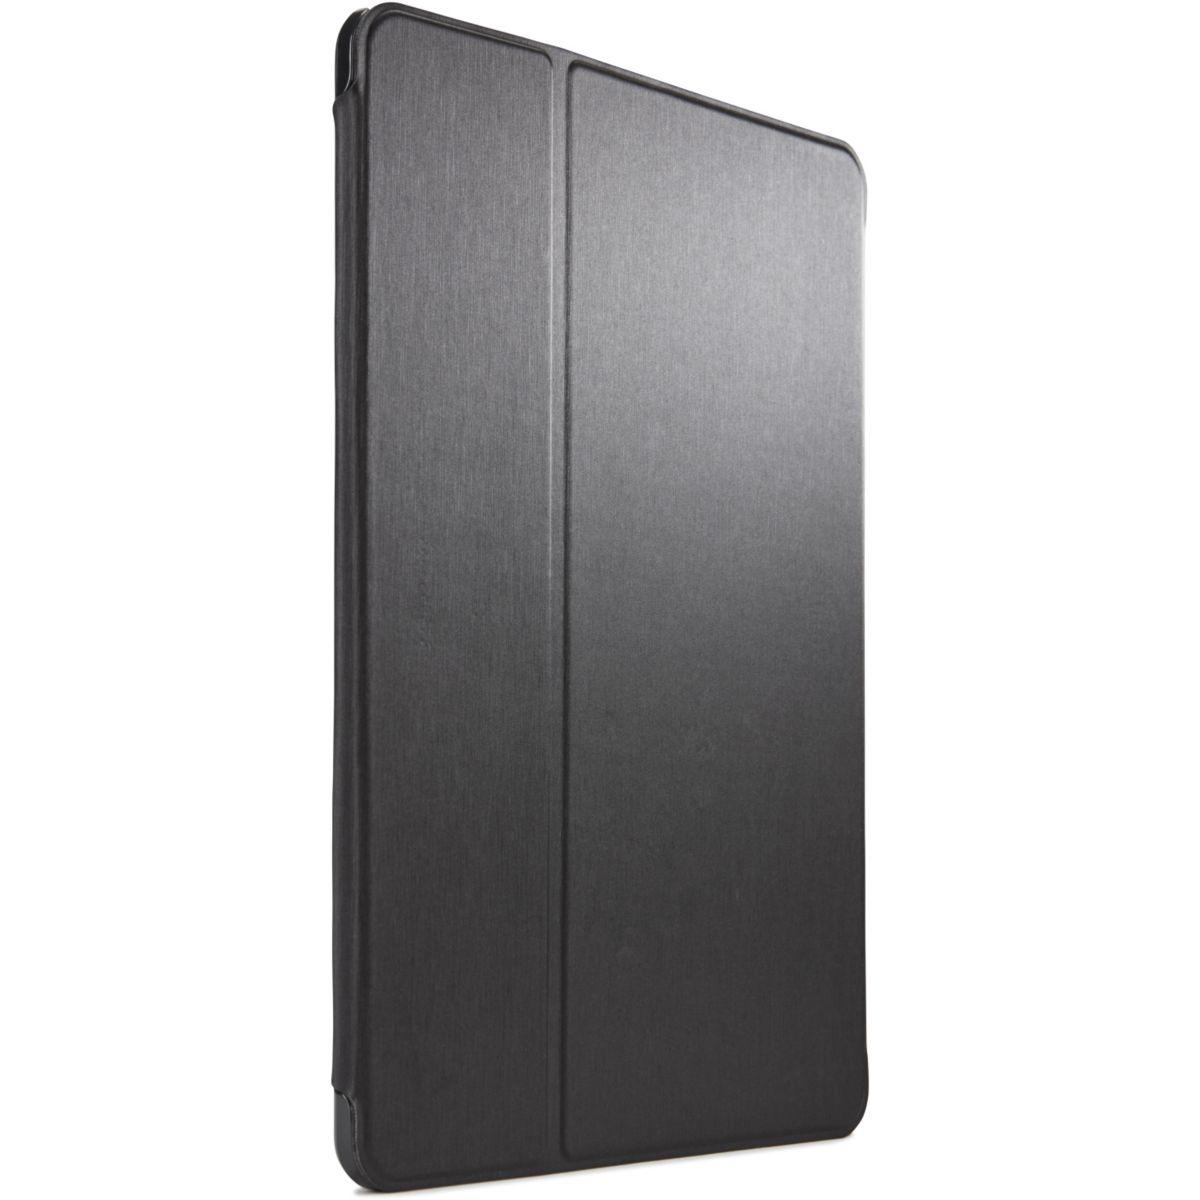 Folio caselogic ipad pro 9.7 noir ultra slim - 20% de remise immédiate avec le code : cool20 (photo)